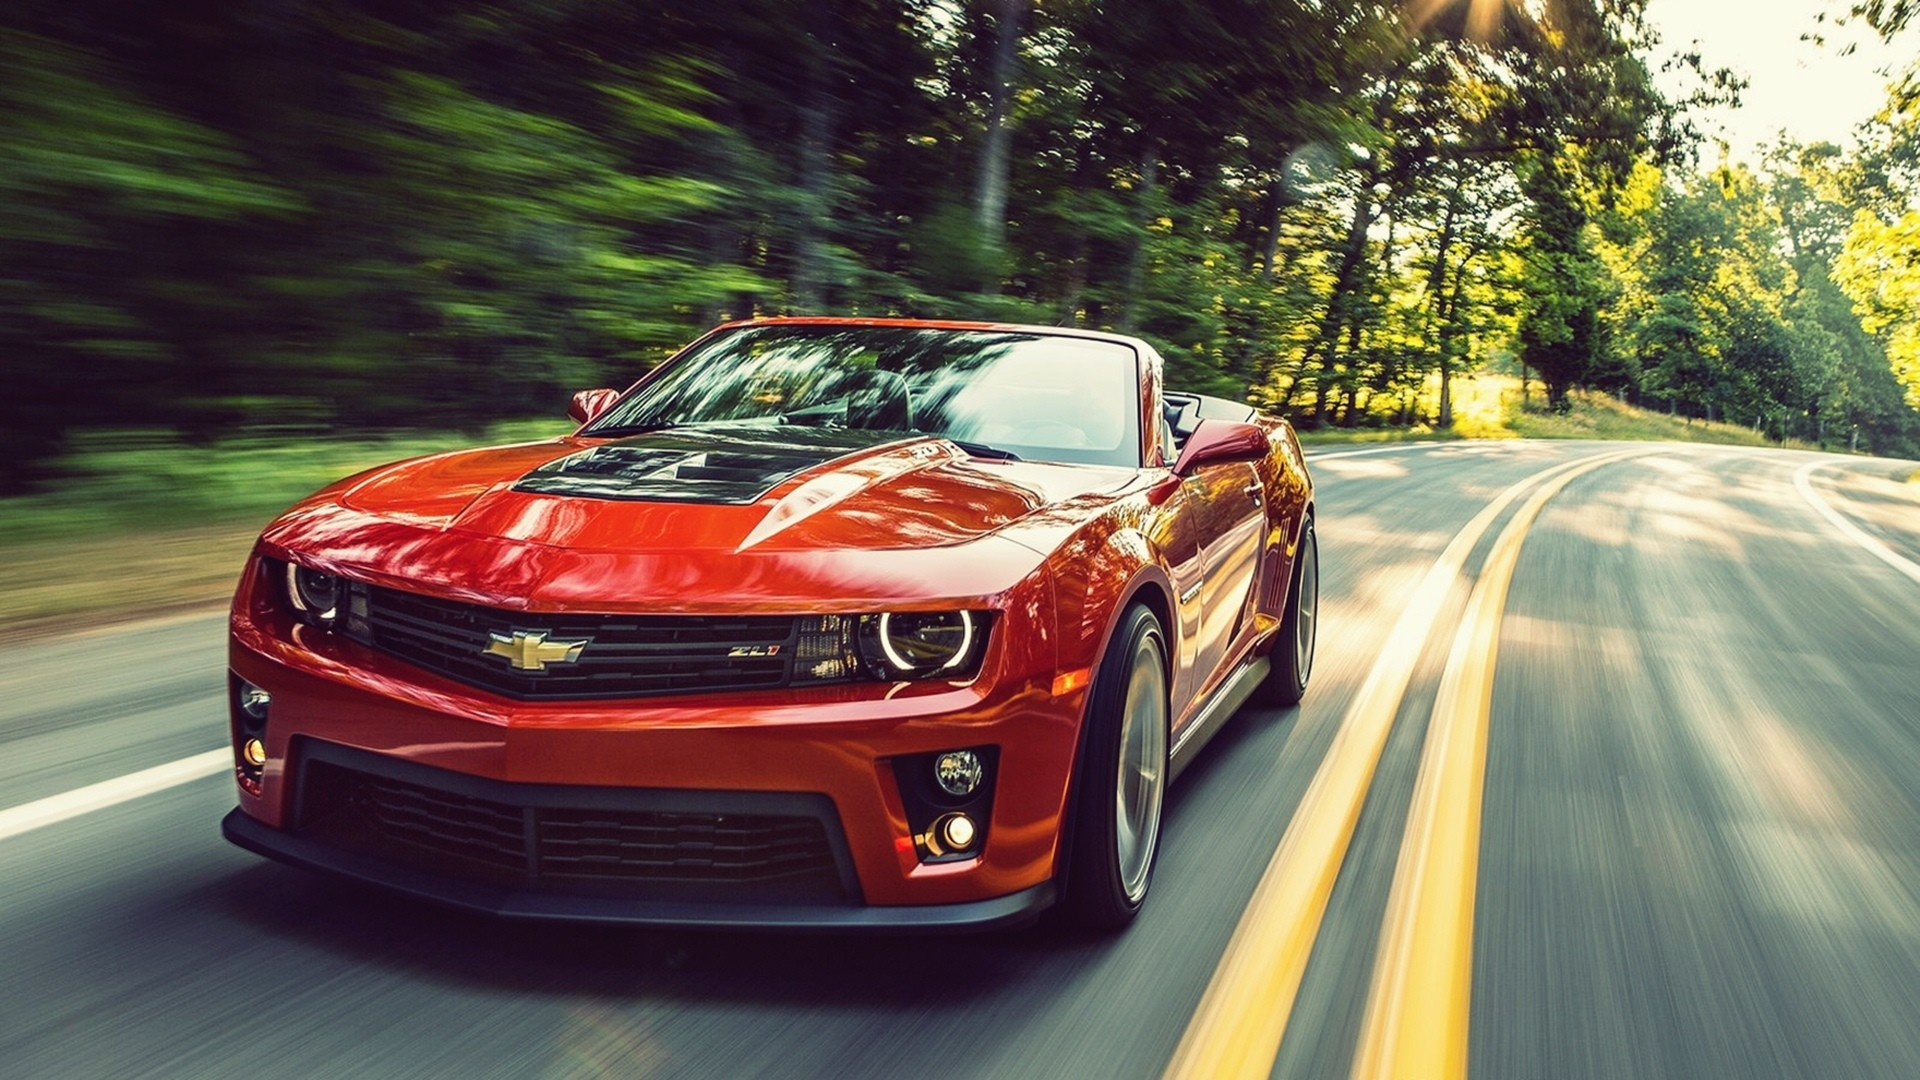 Res: 1920x1080, 28 Chevrolet Camaro ZL1 HD Wallpapers | Background Images - Wallpaper Abyss